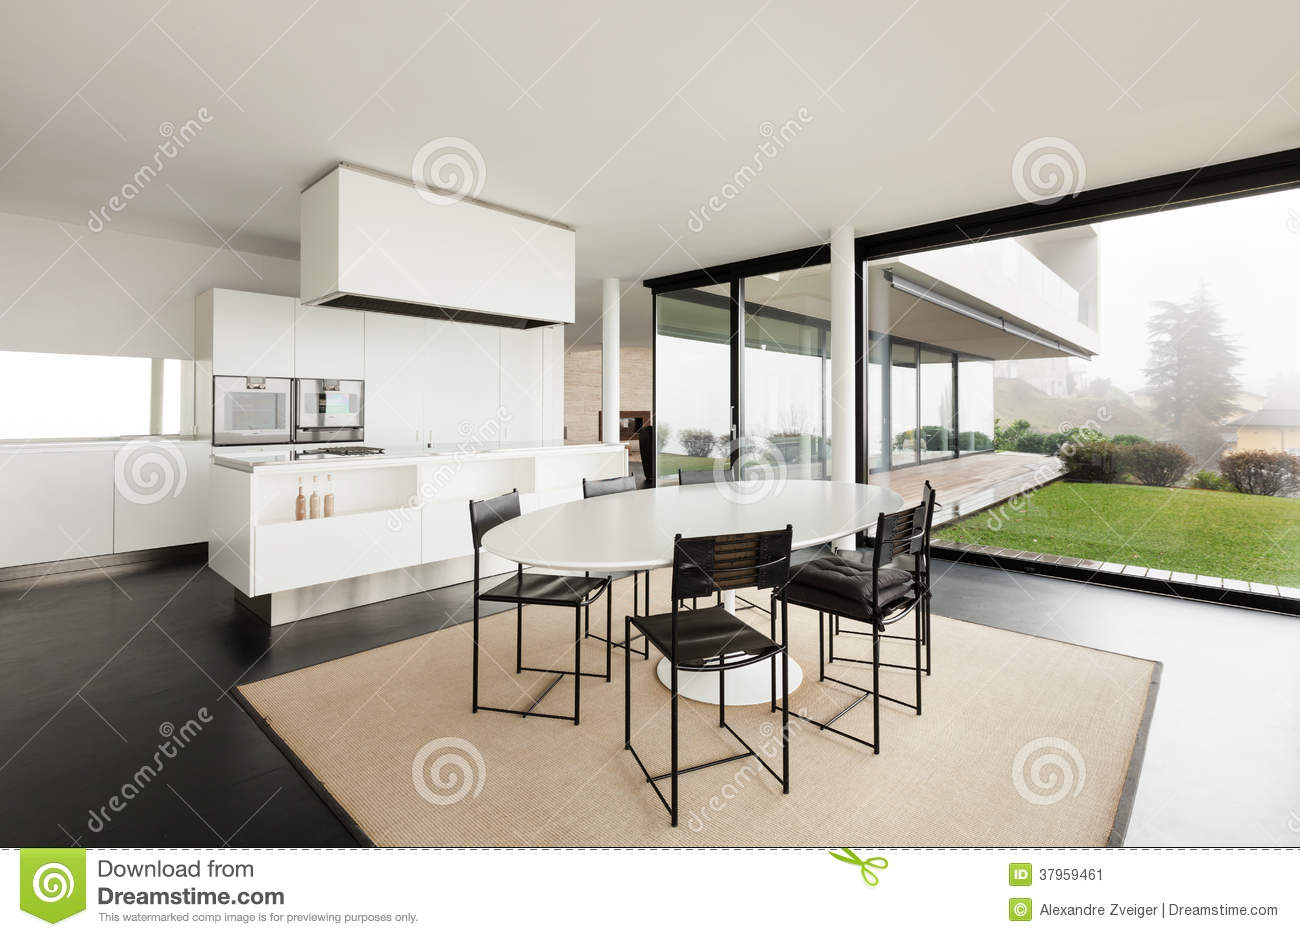 Architecture int rieur d 39 une villa moderne image stock for Deco interieur villa